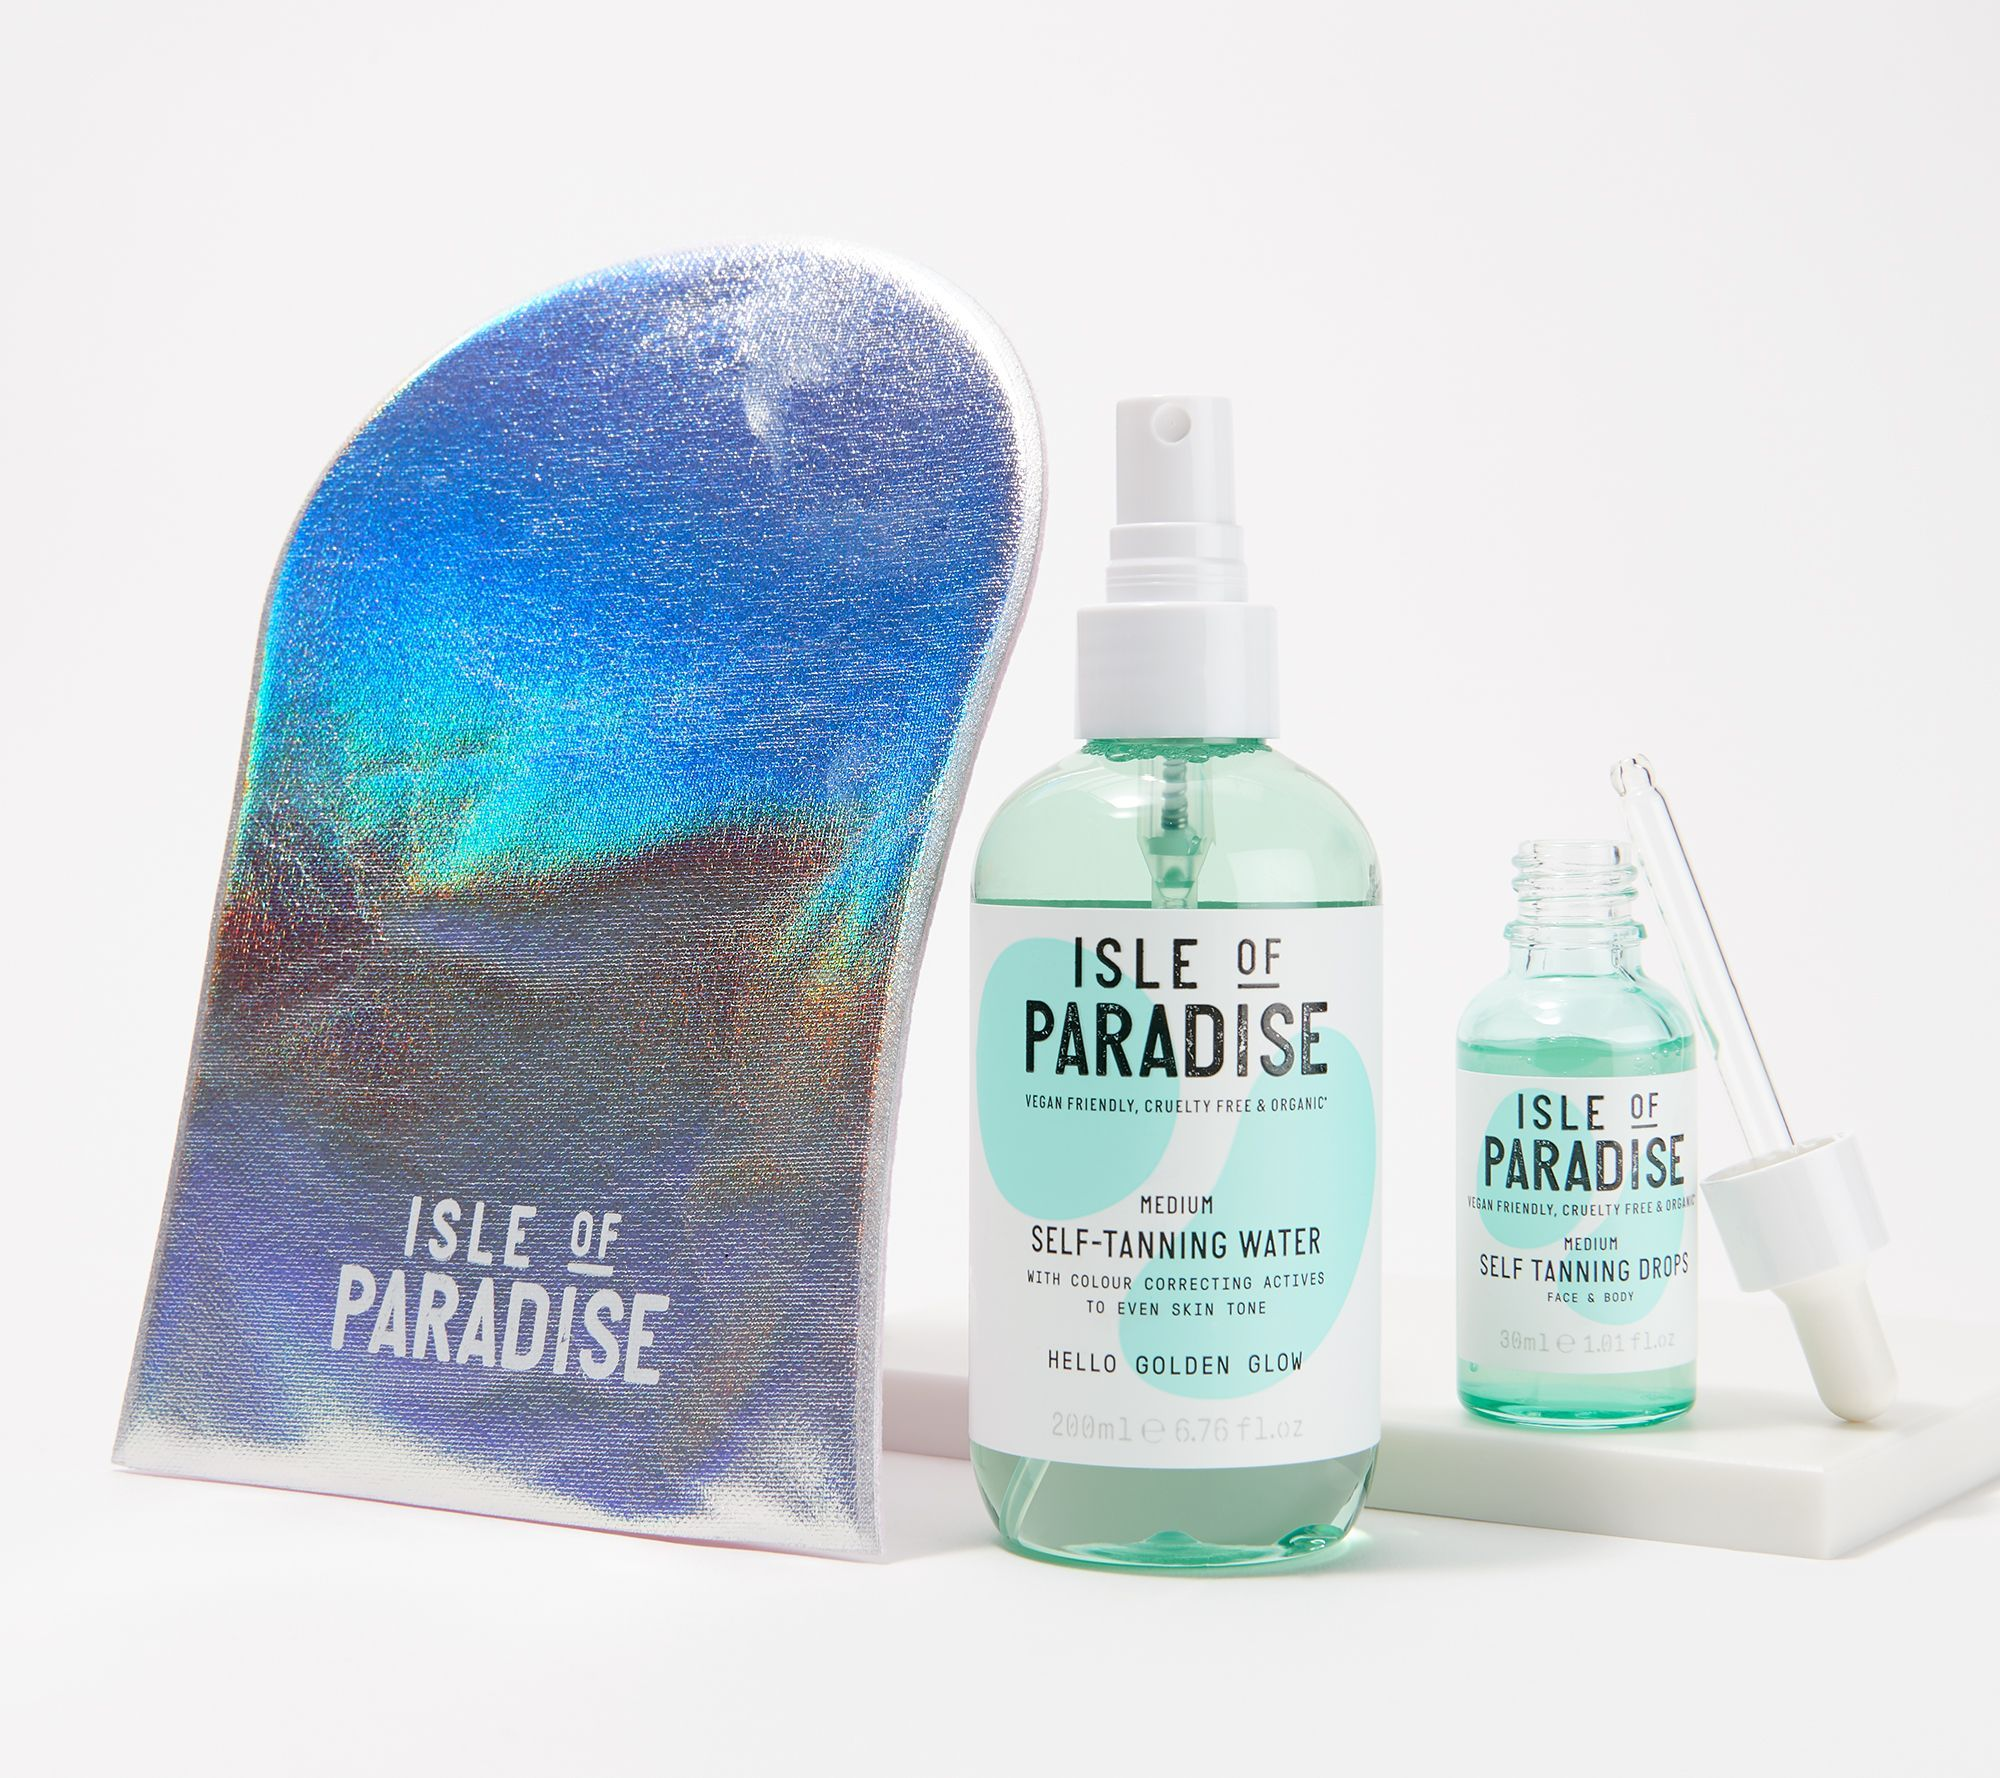 Isle of Paradise SelfTanning Drops & Water Set with Mitt